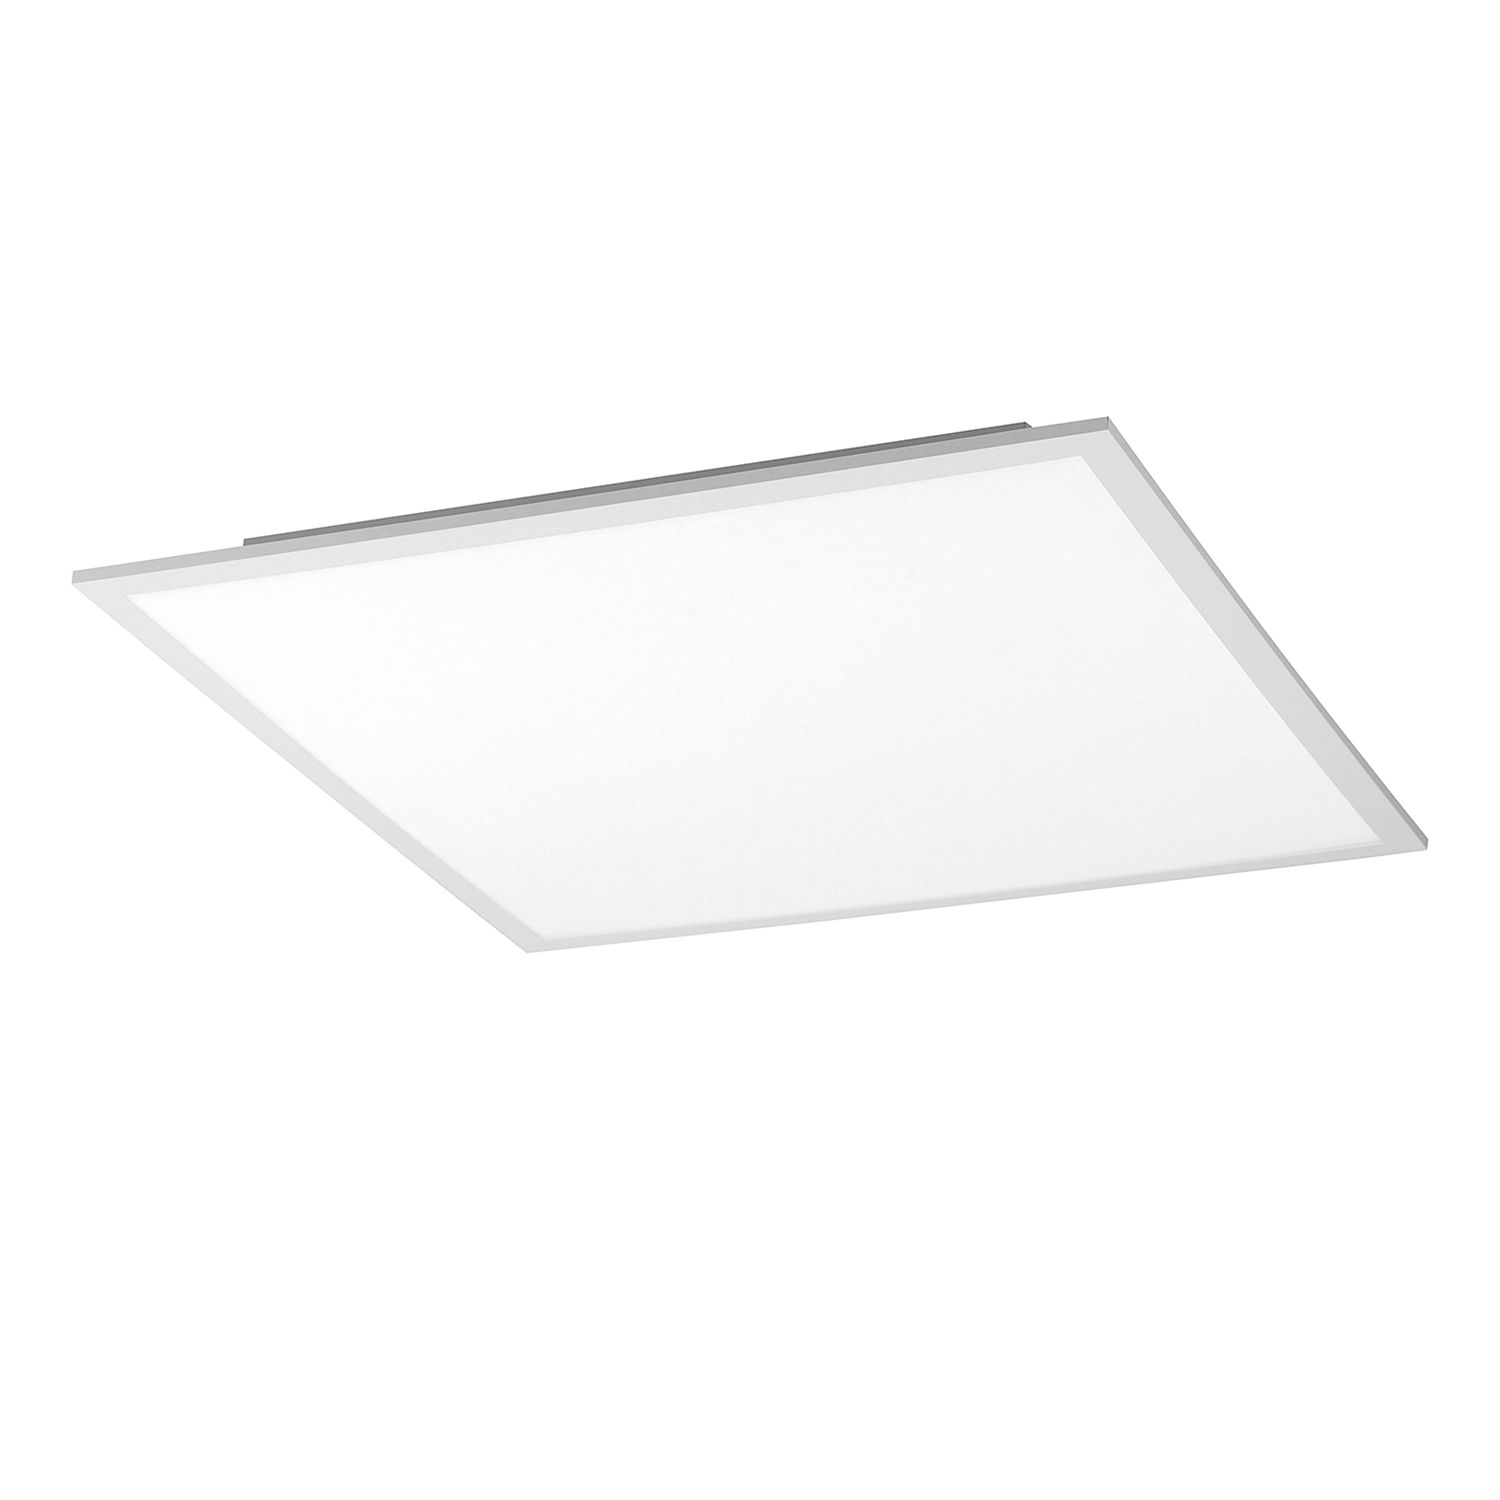 home24 LED-Deckenleuchte Flat Panel I